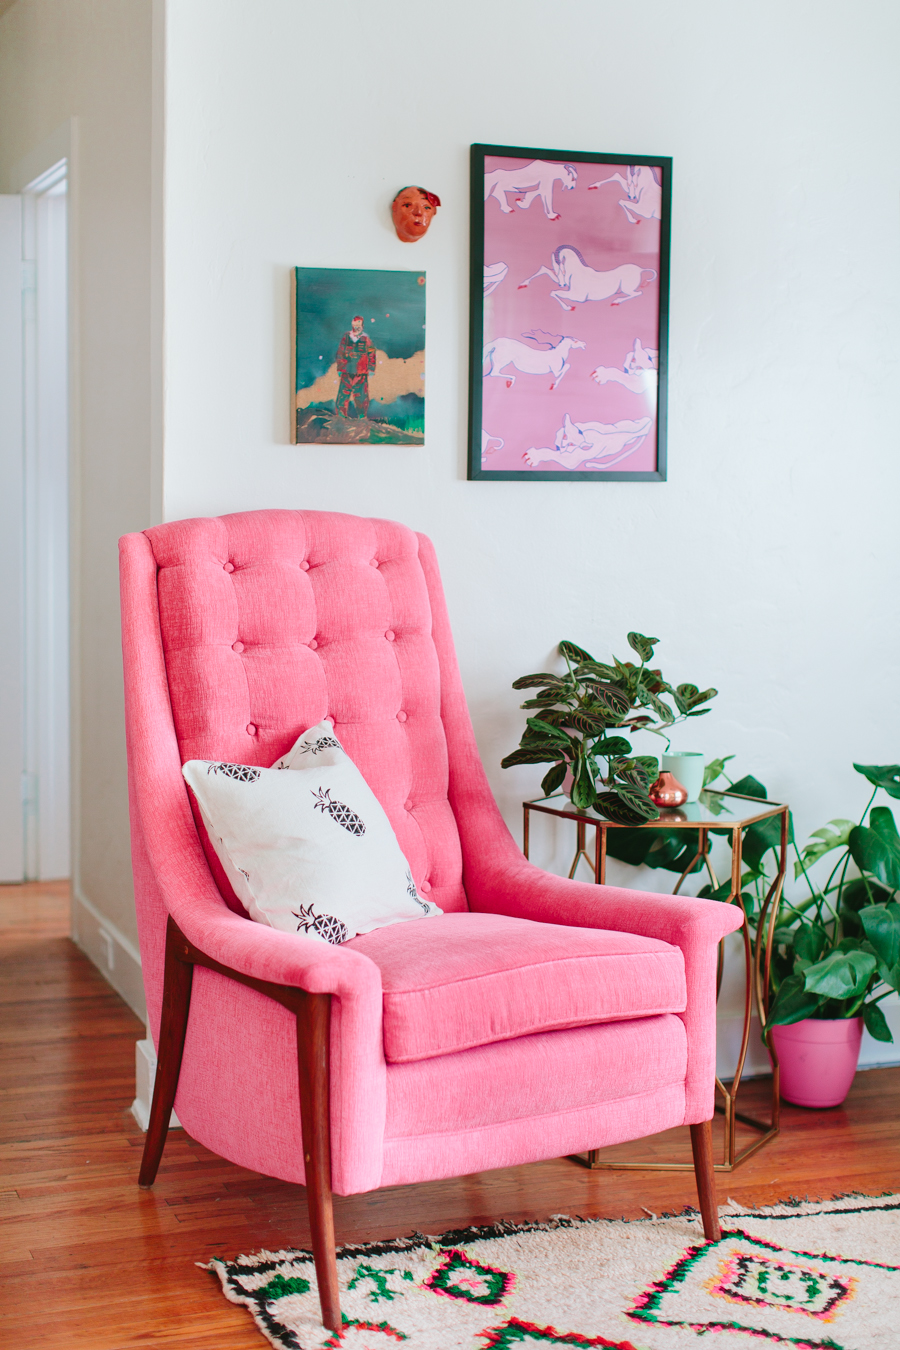 Color Week Inspirations: Pink Monday Color Week Inspiration: Pink Monday Mood Board The Ultimate Pink Shade for a Modern Home Decor 14